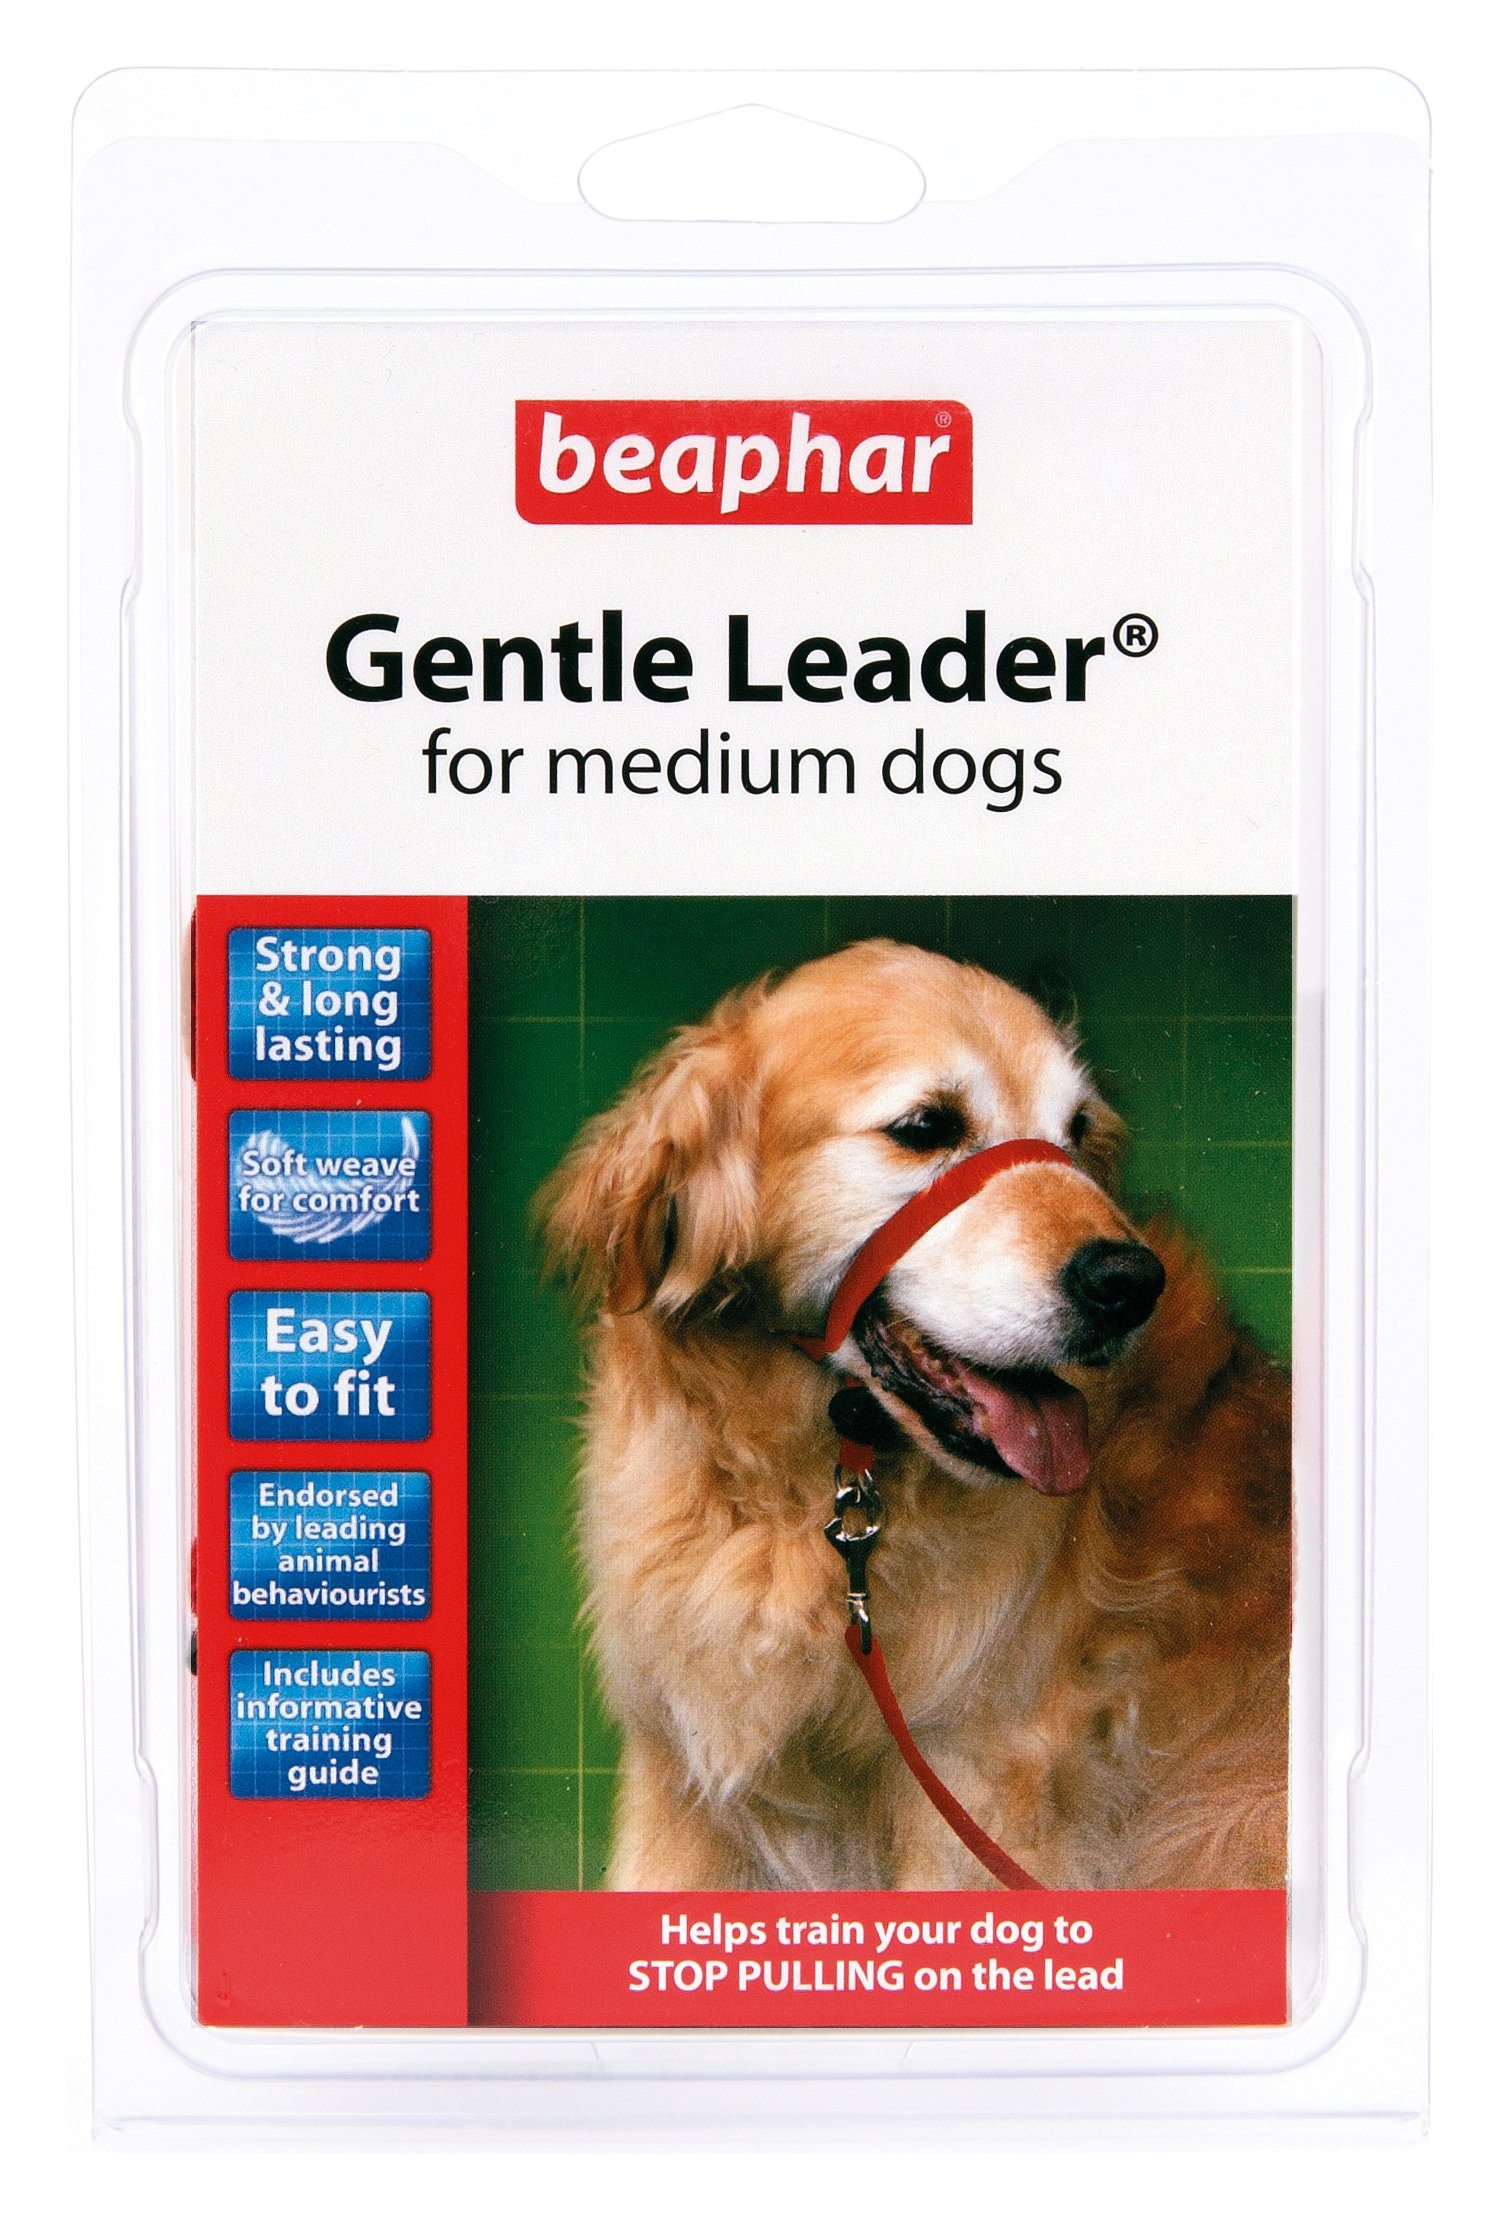 BEAPHAR GENTLE LEADER FOR MEDIUM DOGS, M SIZE, RED COLOUR LEAD